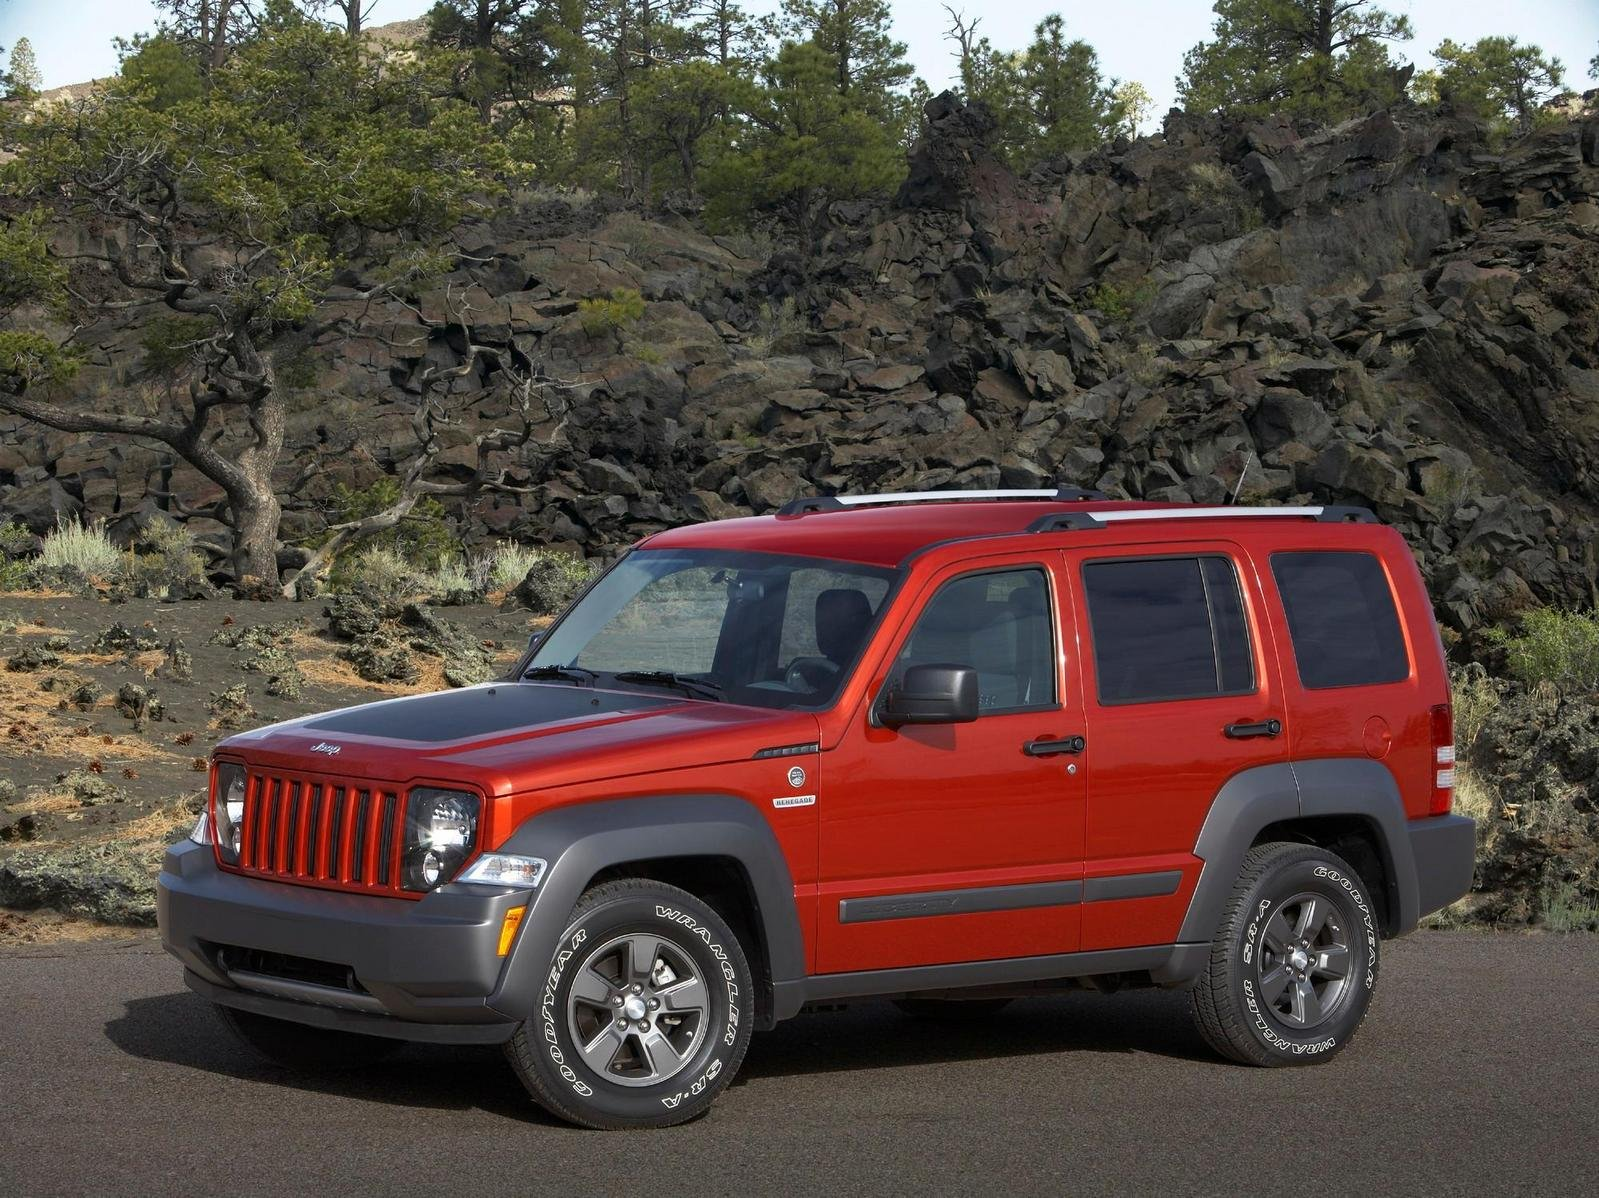 2010 jeep liberty renegade review top speed. Black Bedroom Furniture Sets. Home Design Ideas